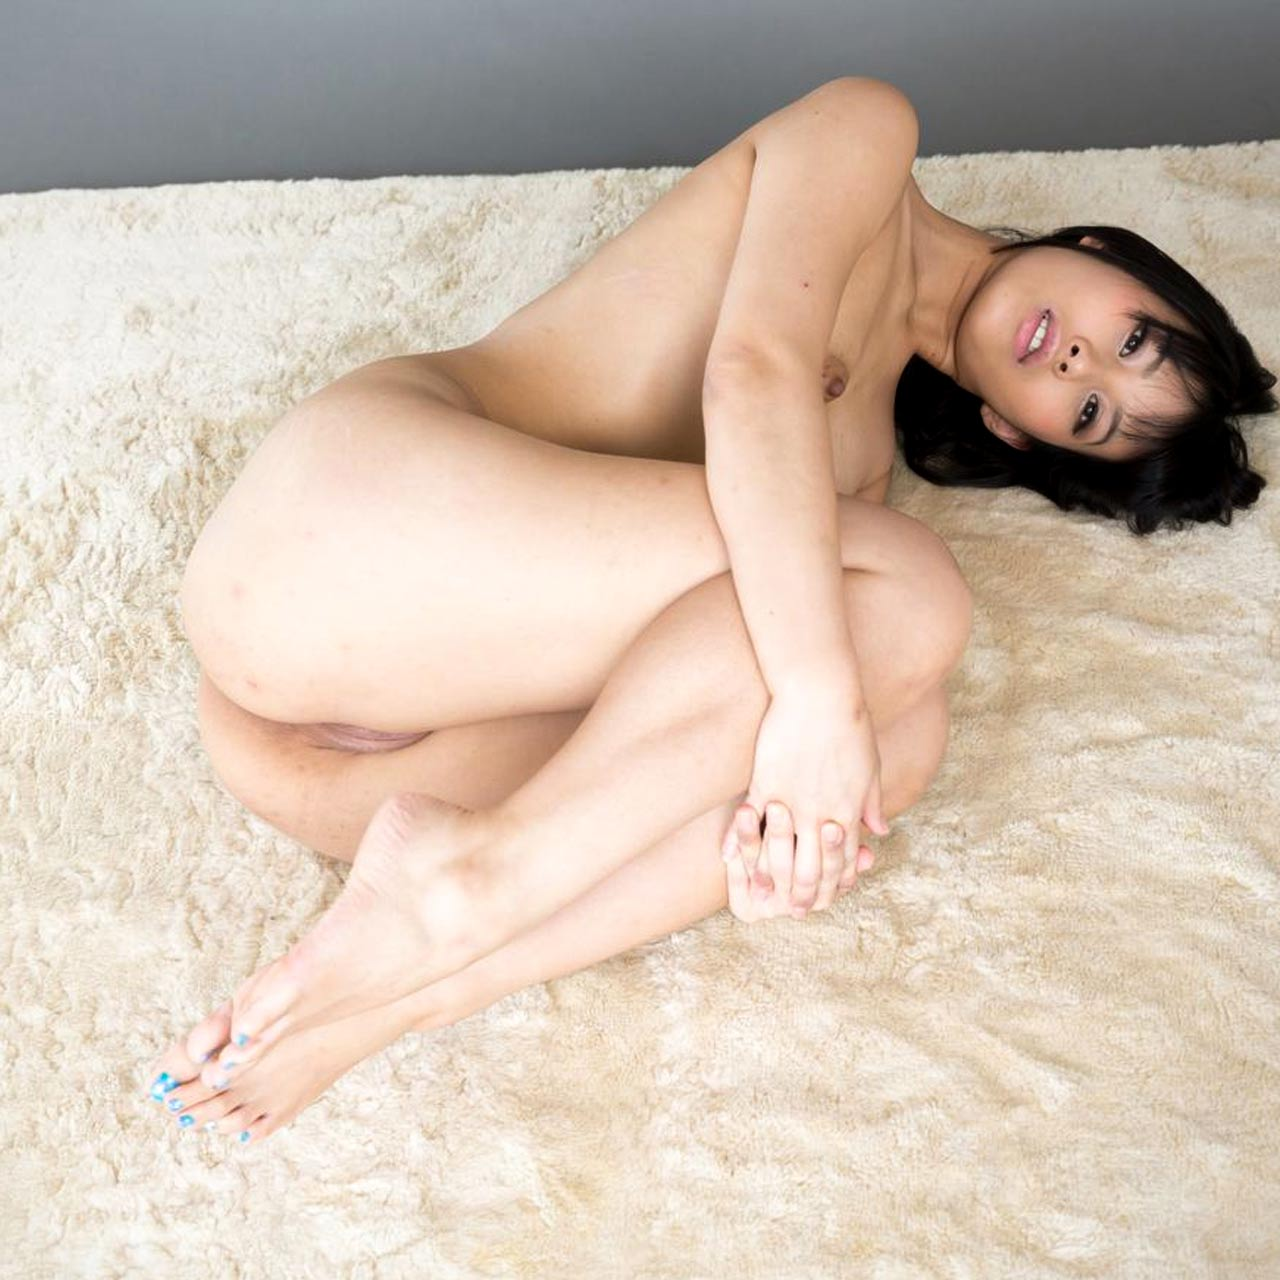 Kotomi Shinosaki nude at Legs Japan. Uncensored FootJob, Foot and Leg Fetish videos.